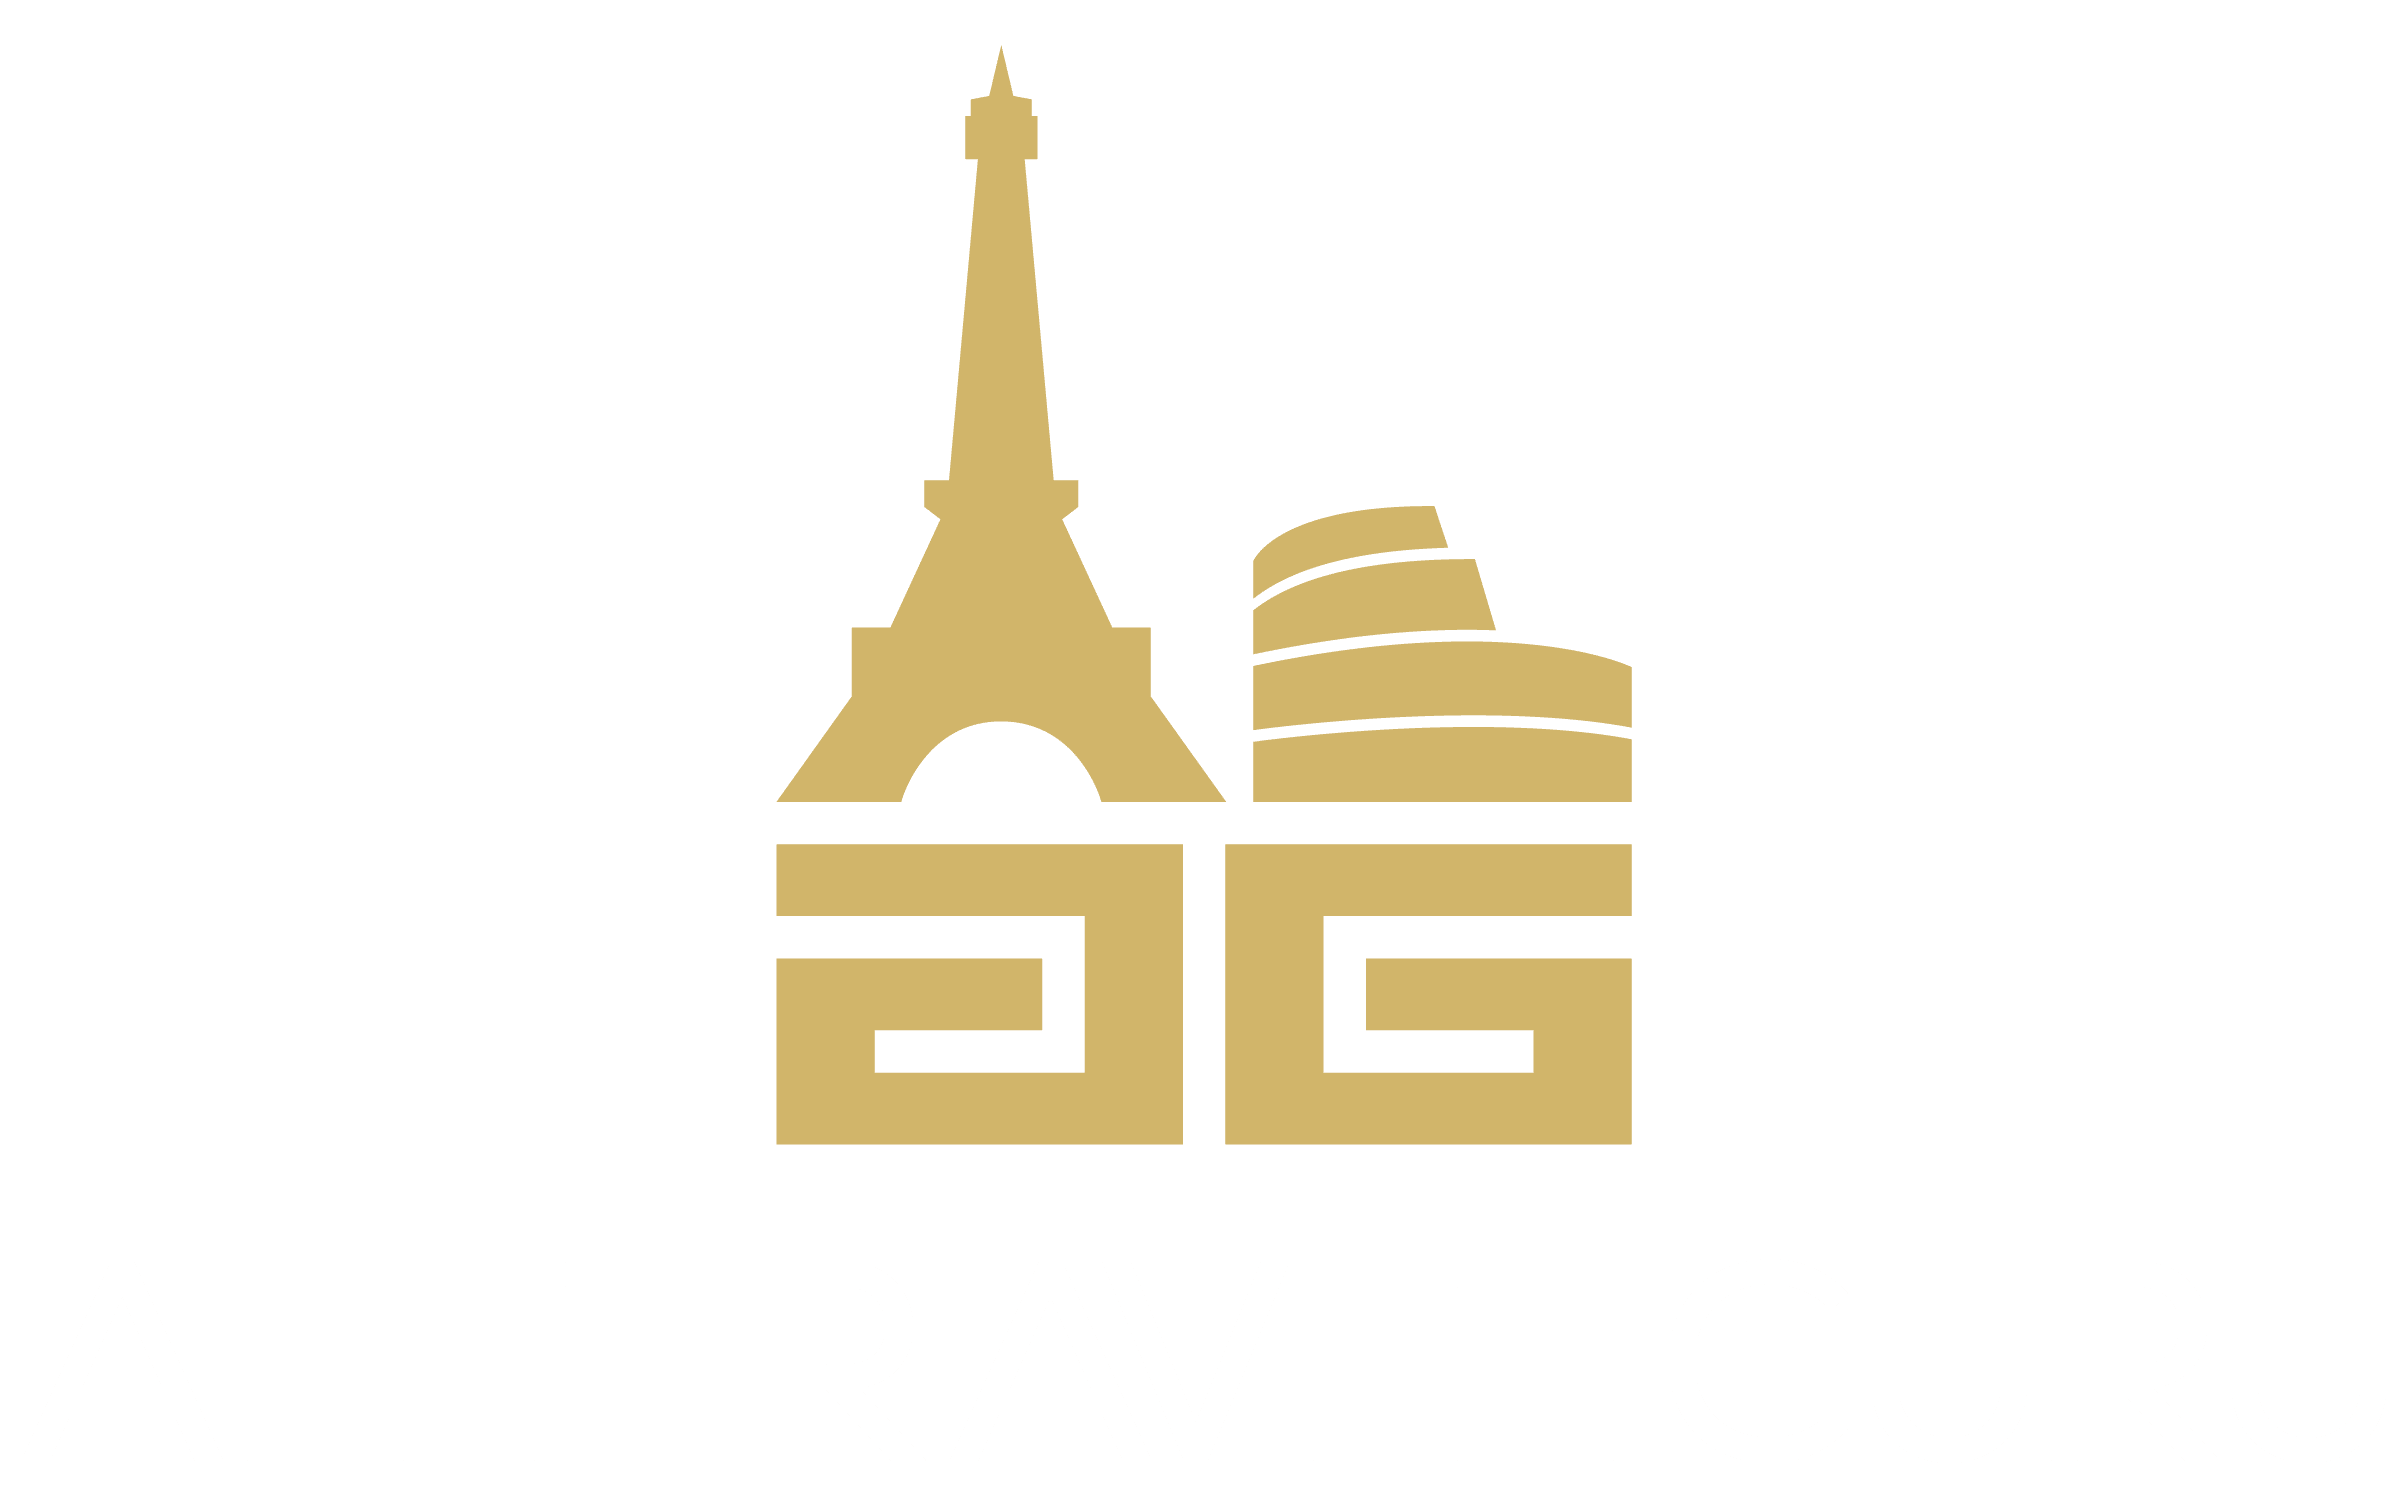 Luxury European Vacation - All Travel Guru